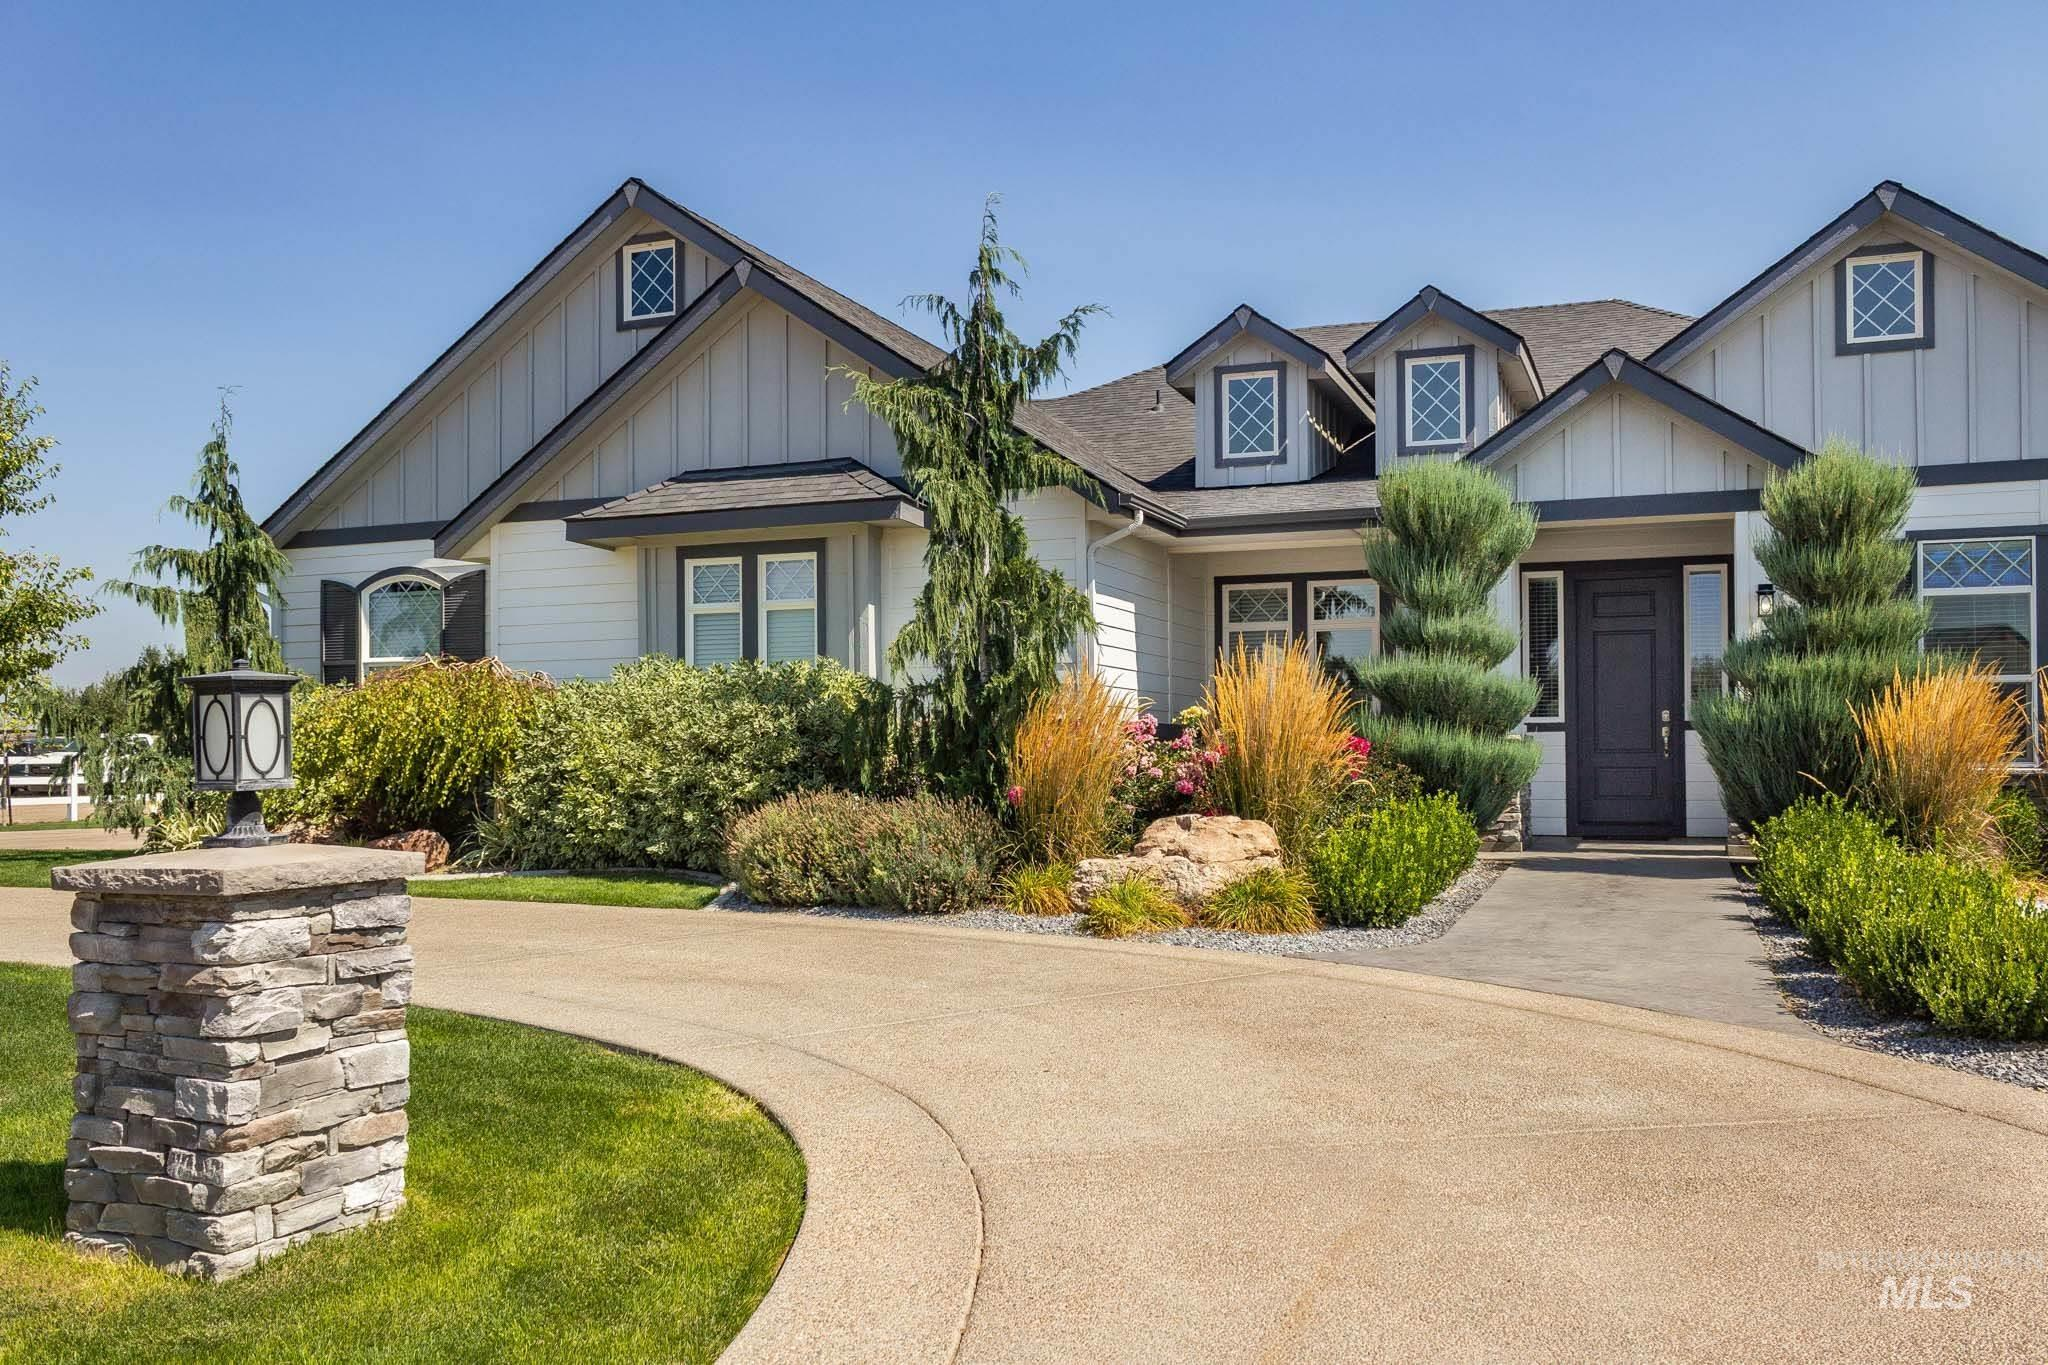 Photo for 5416 Lewis Crossing Way, Nampa, ID 83686 (MLS # 98780413)